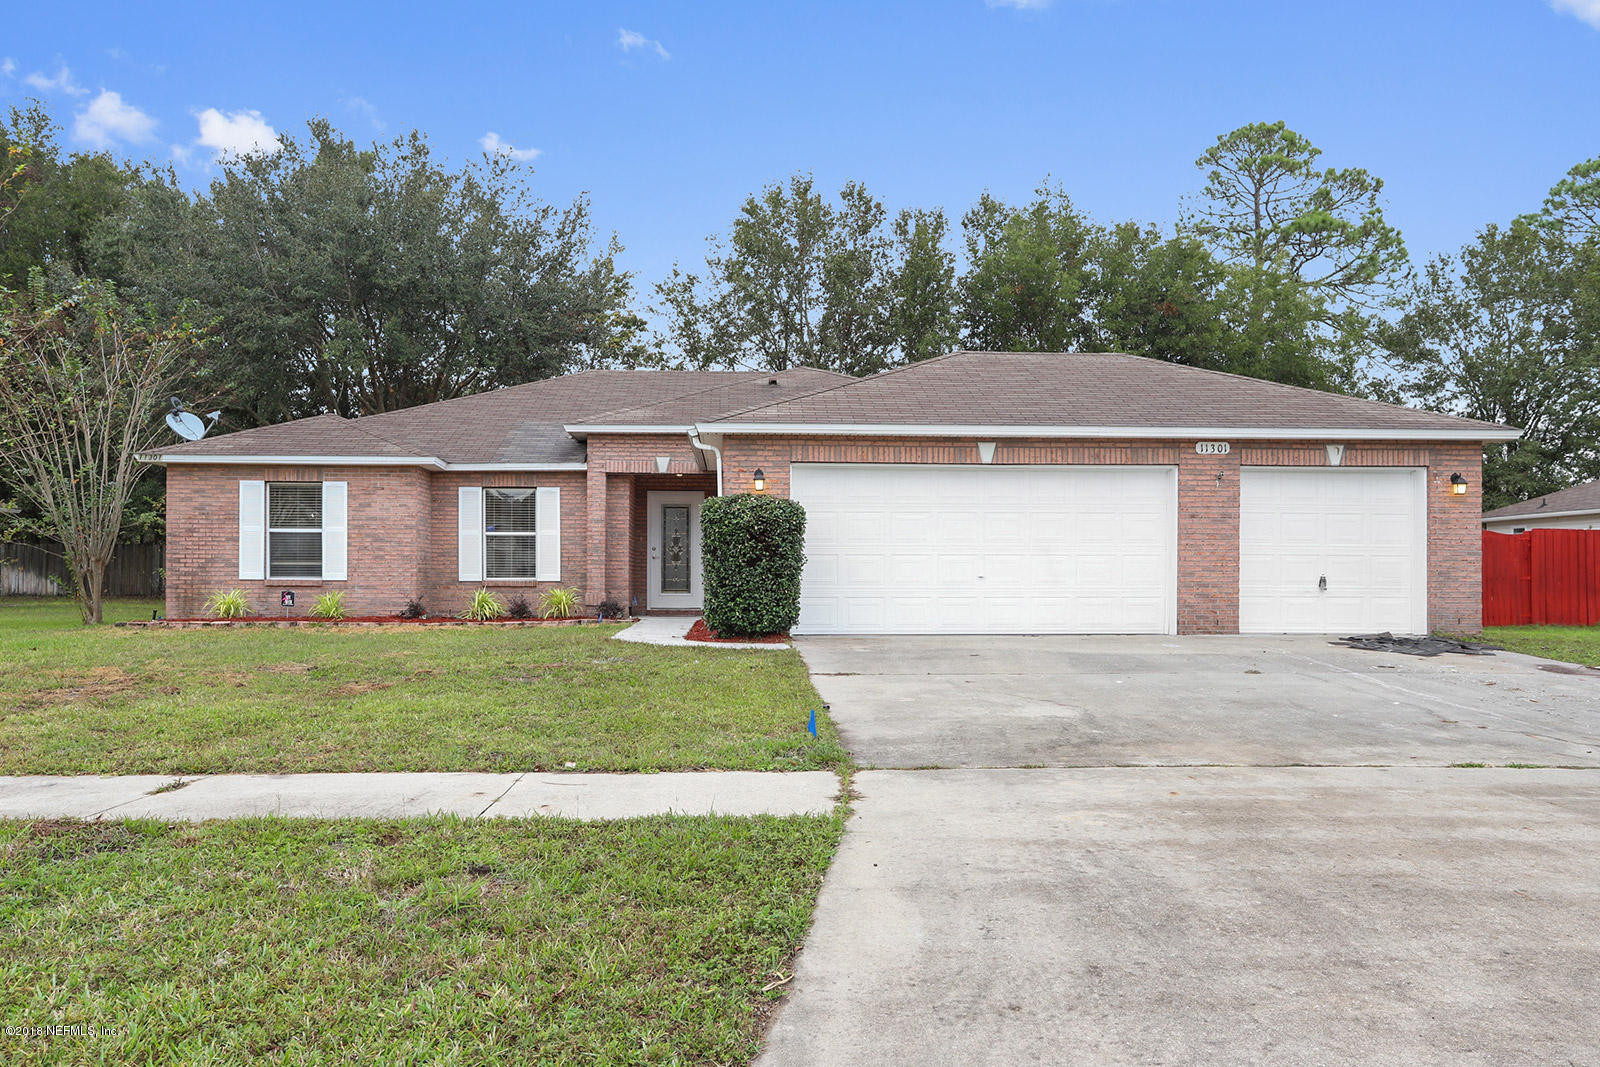 11301 MARTIN LAKES, JACKSONVILLE, FLORIDA 32220, 3 Bedrooms Bedrooms, ,2 BathroomsBathrooms,Residential - single family,For sale,MARTIN LAKES,965417